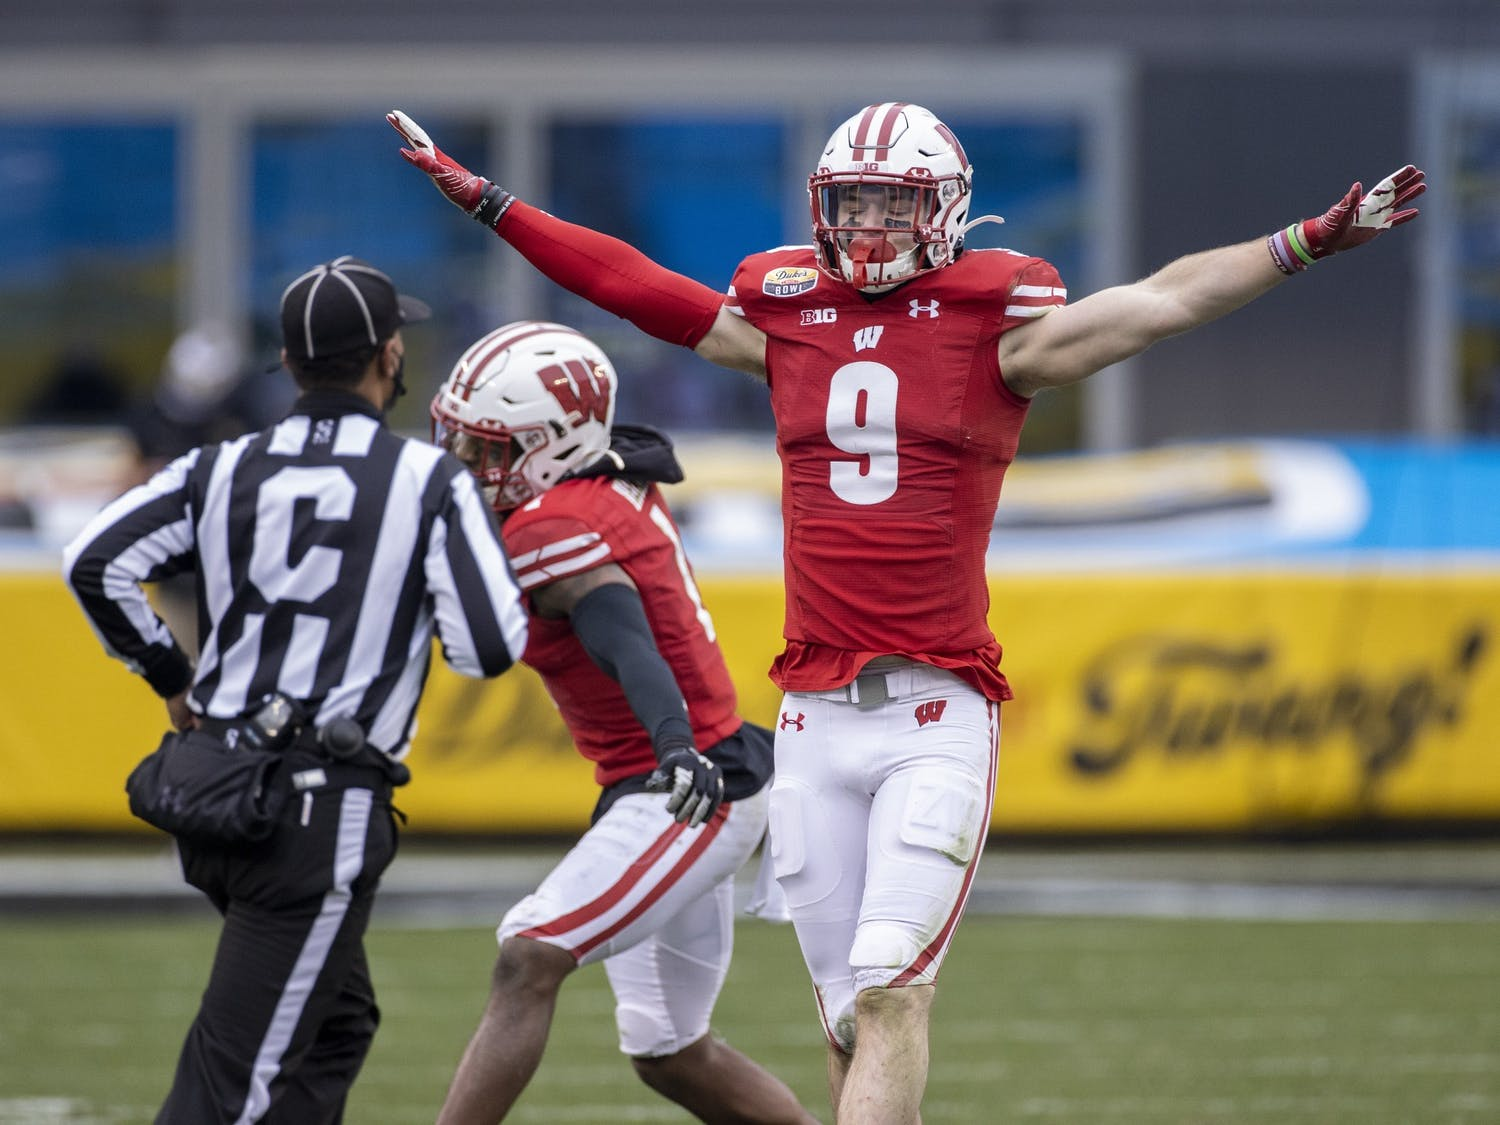 Wisconsin Badgers XXXX during an NCAA Duke's Mayo Bowl college football game against the Wake Forest Damon Deacons Wednesday, Dec. 30, 2020, in Charlotte, NC. (Photo by David Stluka/Wisconsin Athletic Communications)